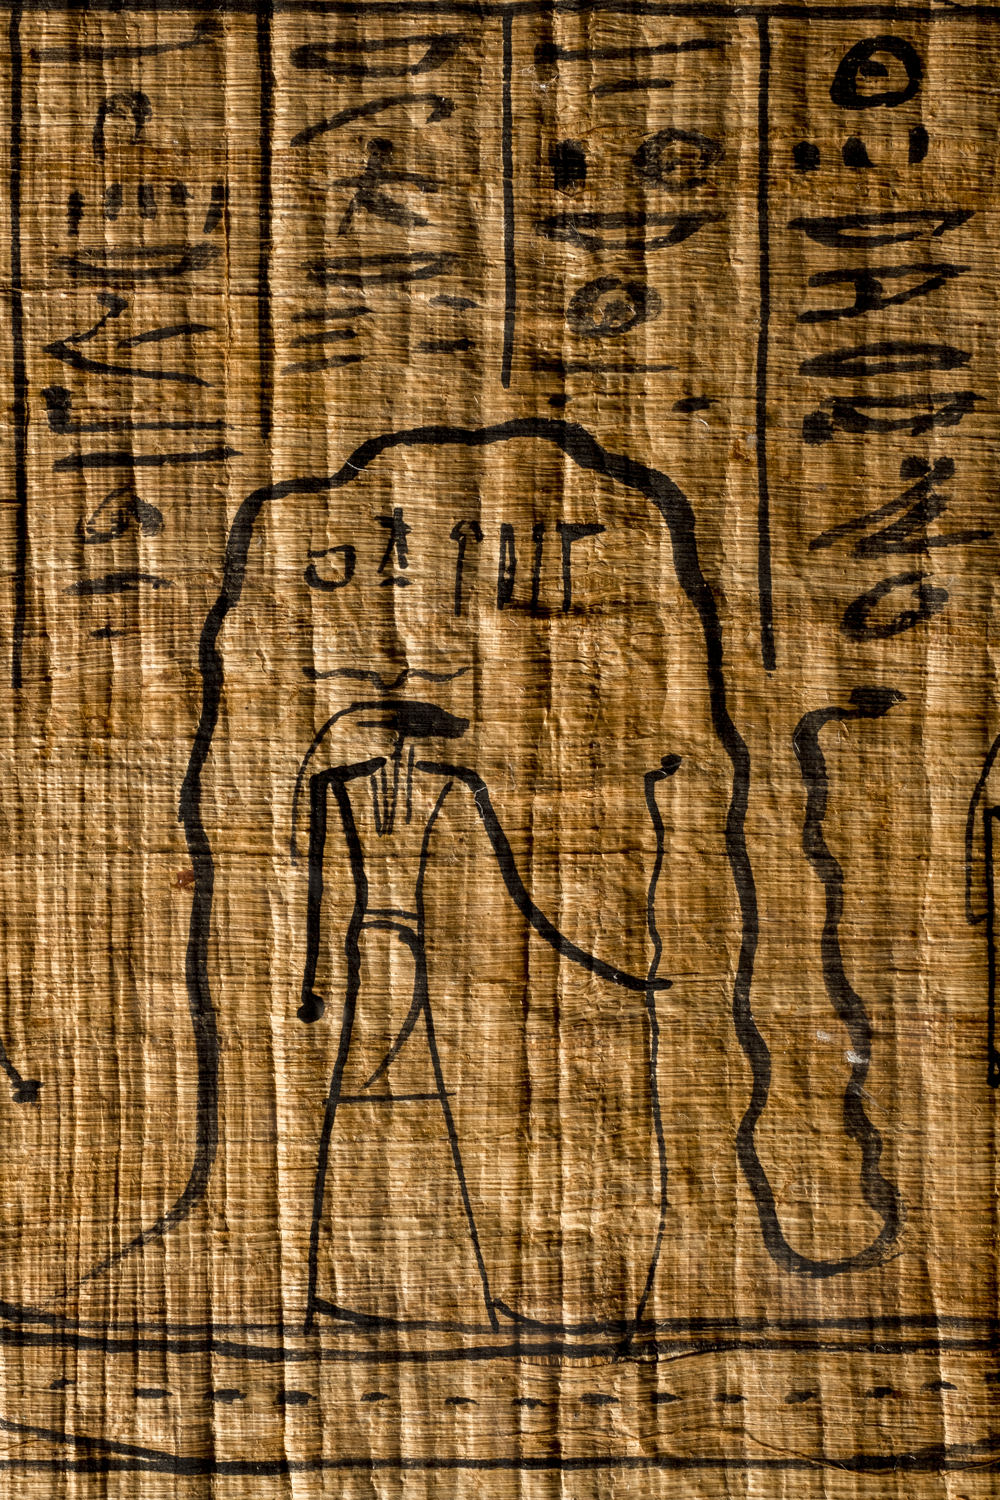 sungod re with a serpent in the egyptian amduat